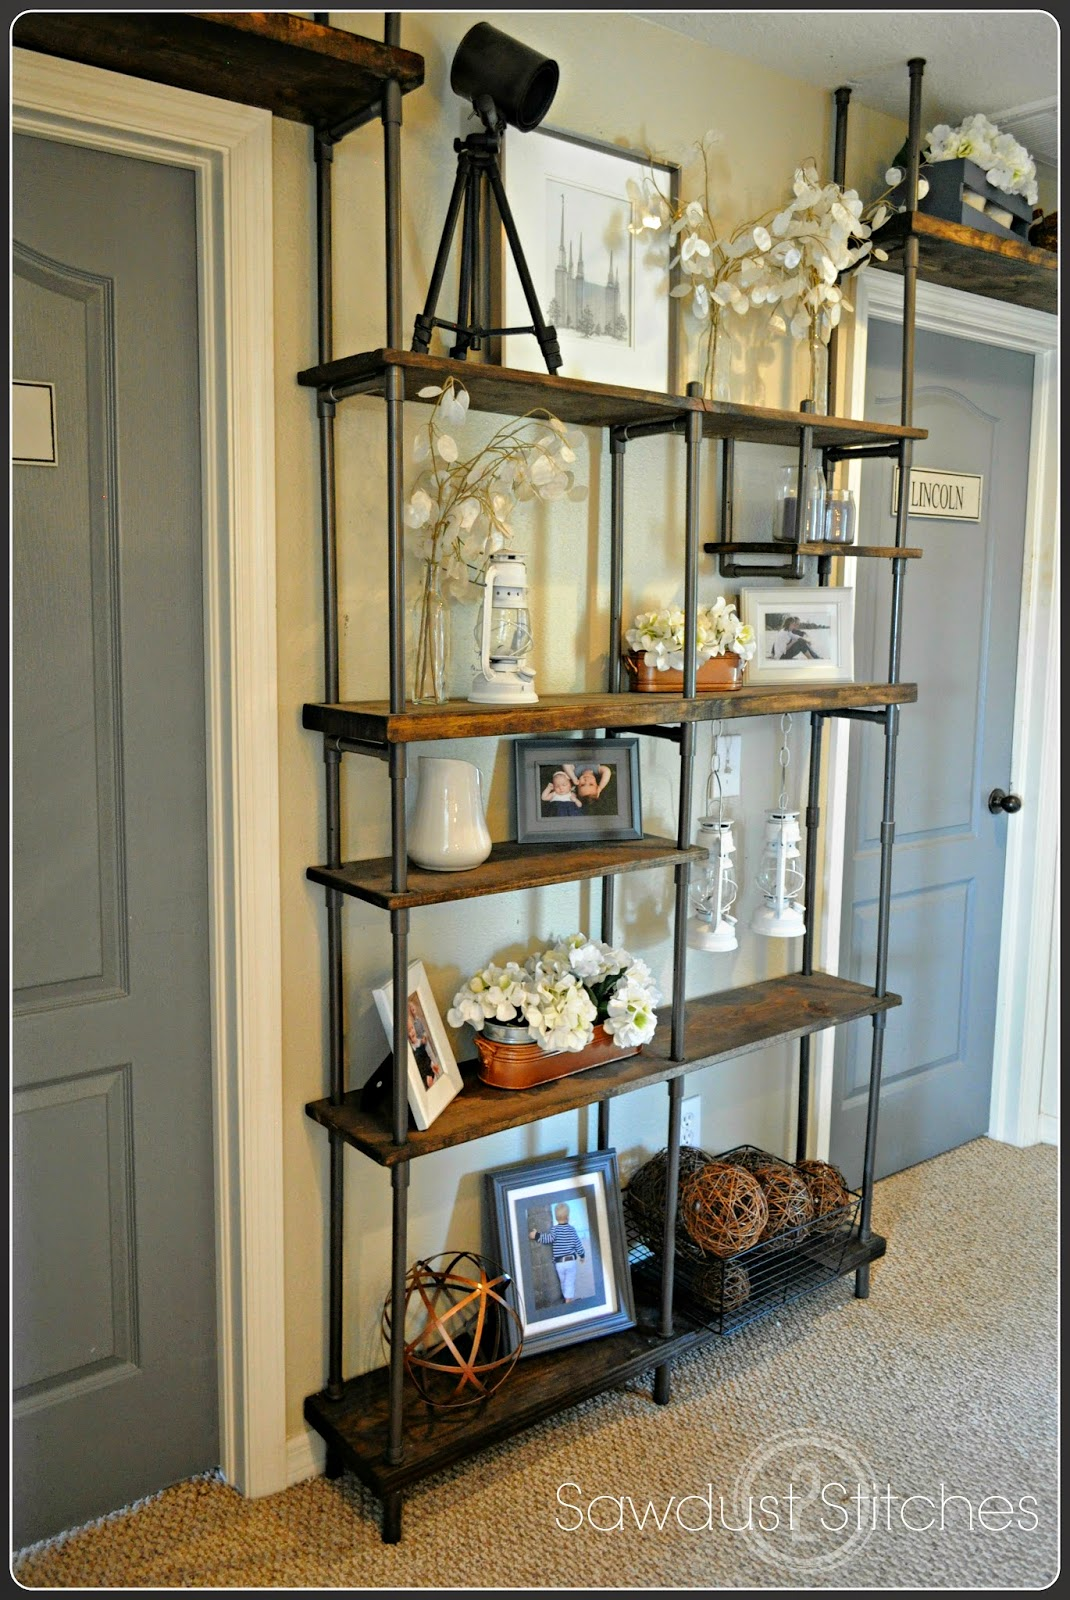 build an industrial shelf using PVC pipe